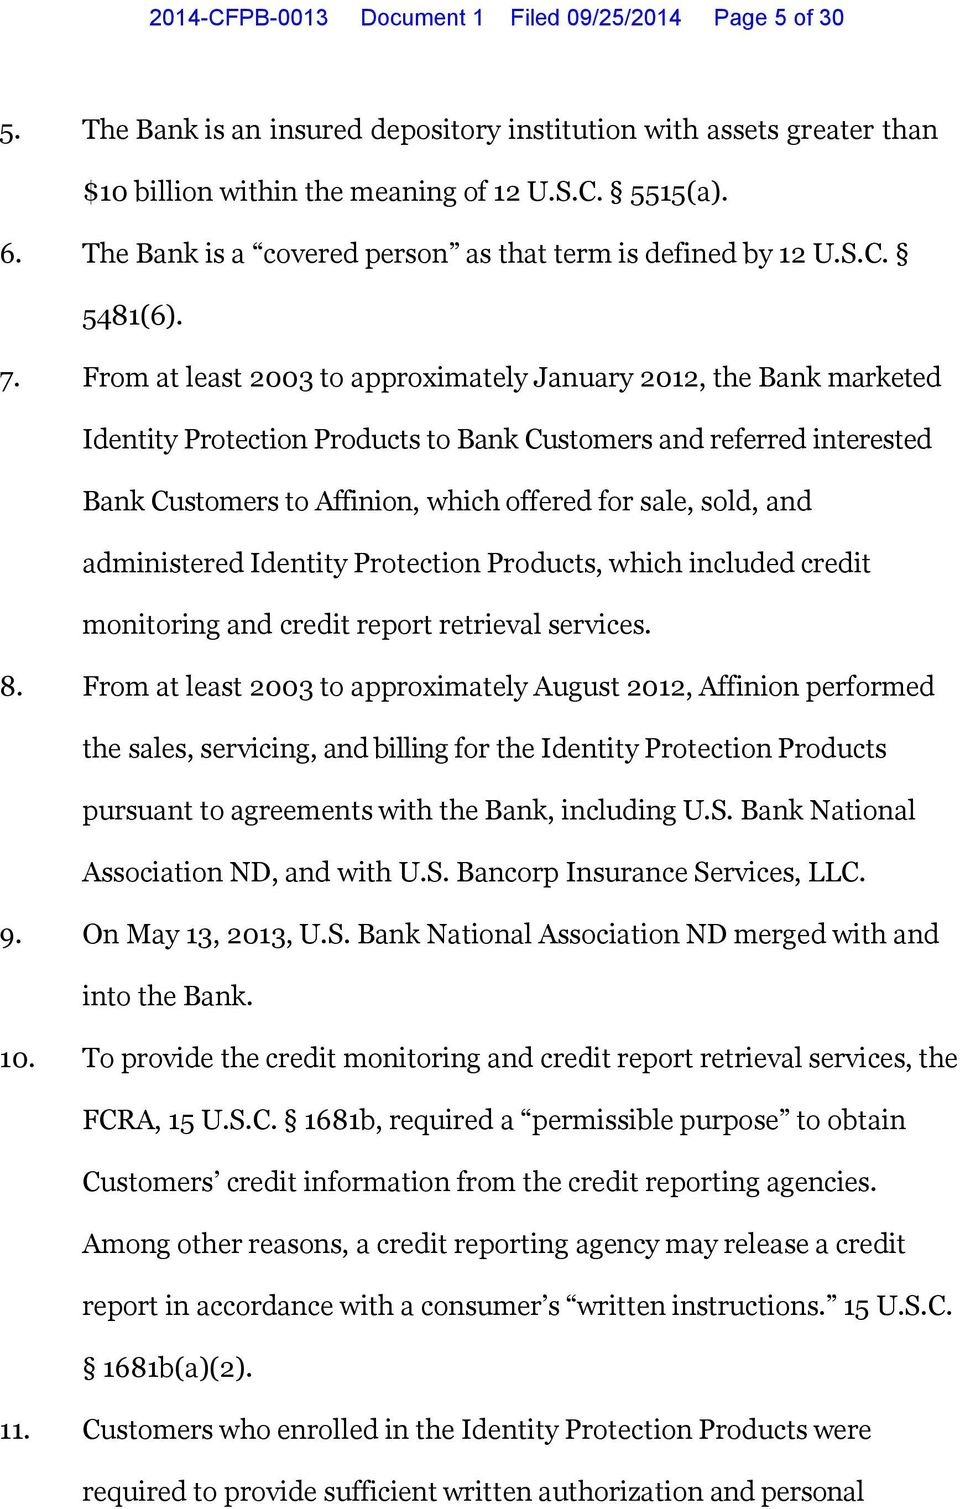 From at least 2003 to approximately January 2012, the Bank marketed Identity Protection Products to Bank Customers and referred interested Bank Customers to Affinion, which offered for sale, sold,